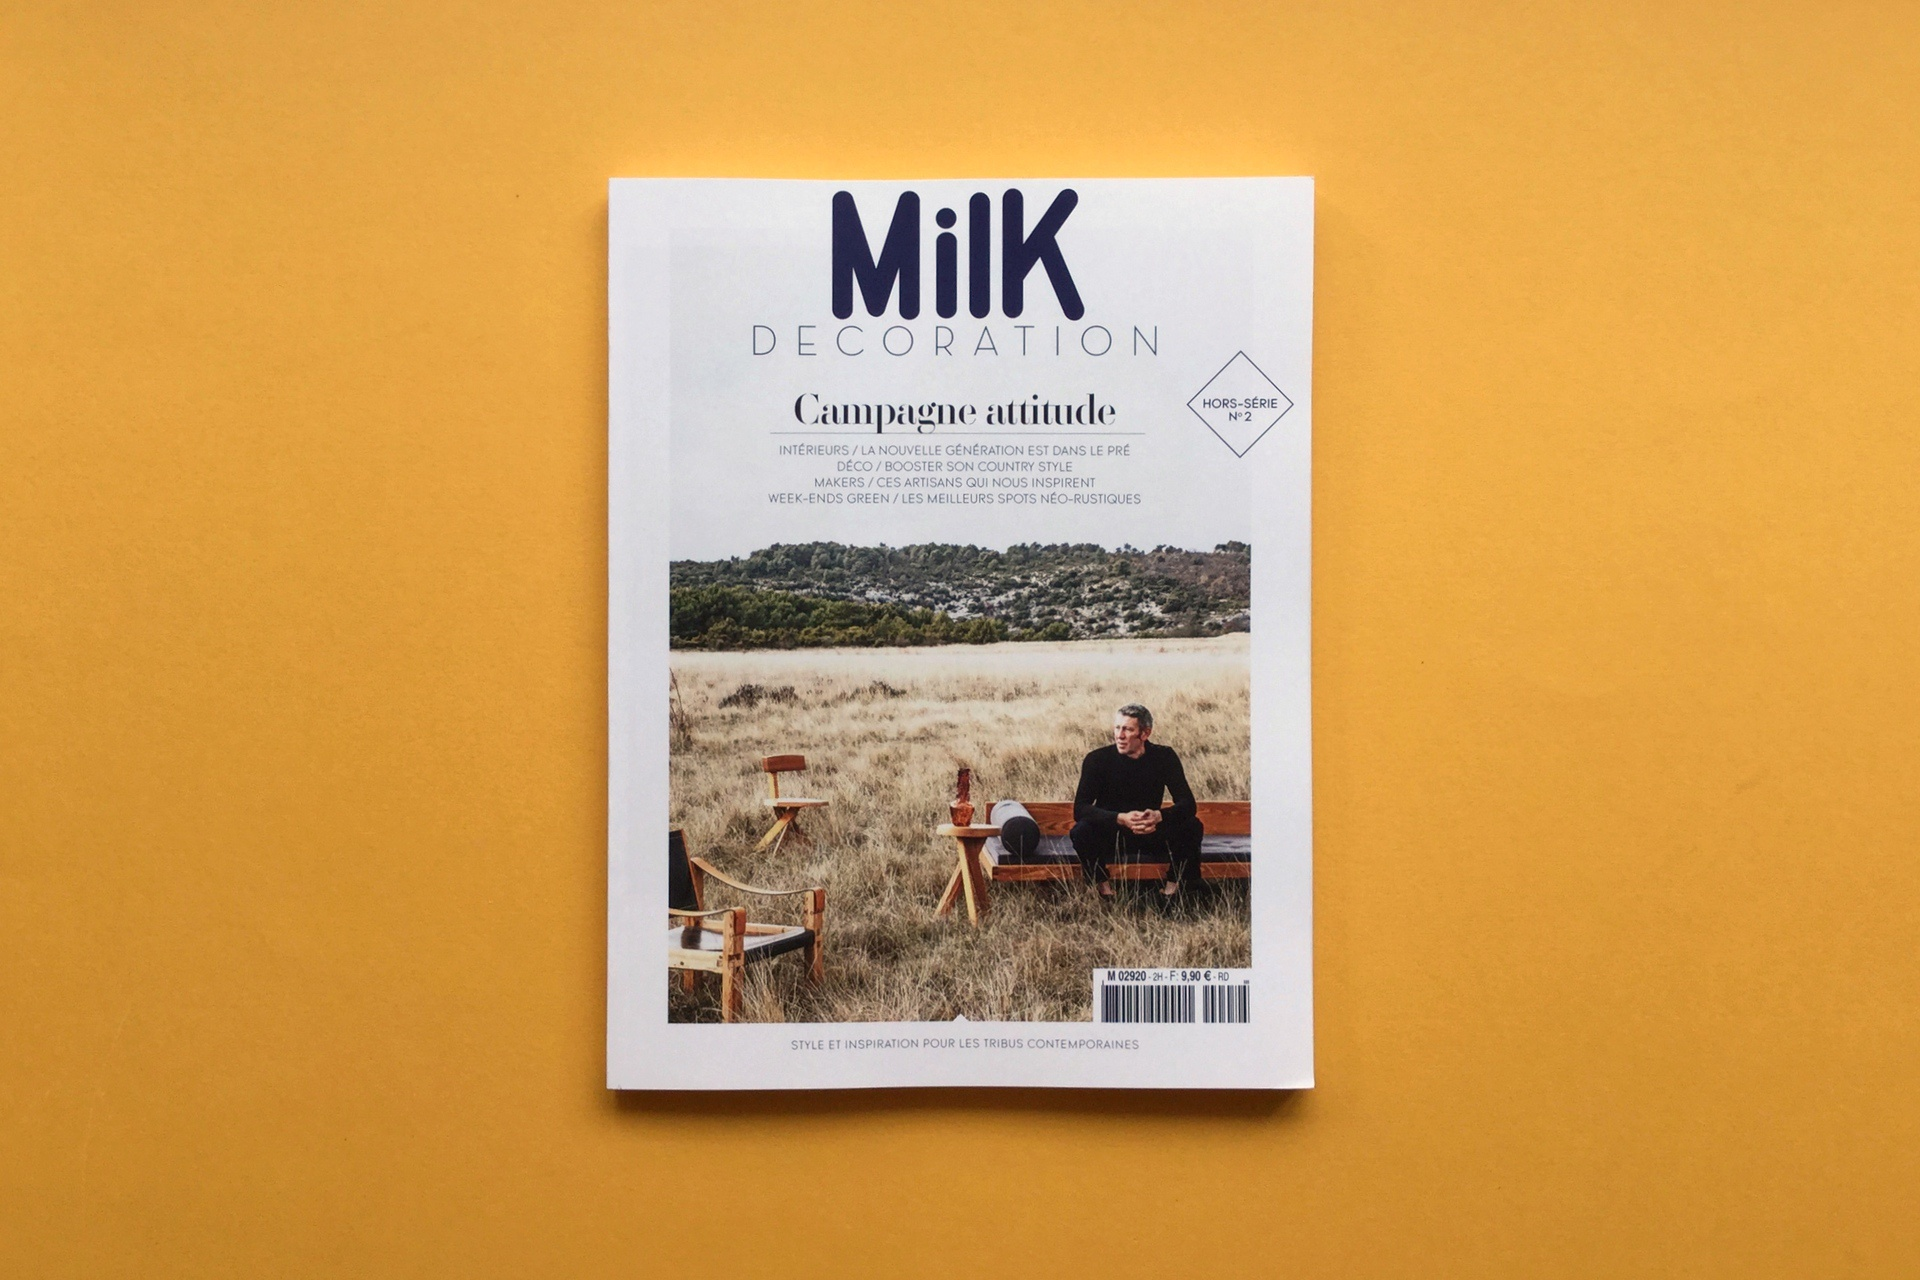 Style Campagne Magazine Milk Decoration Hors Serie 2